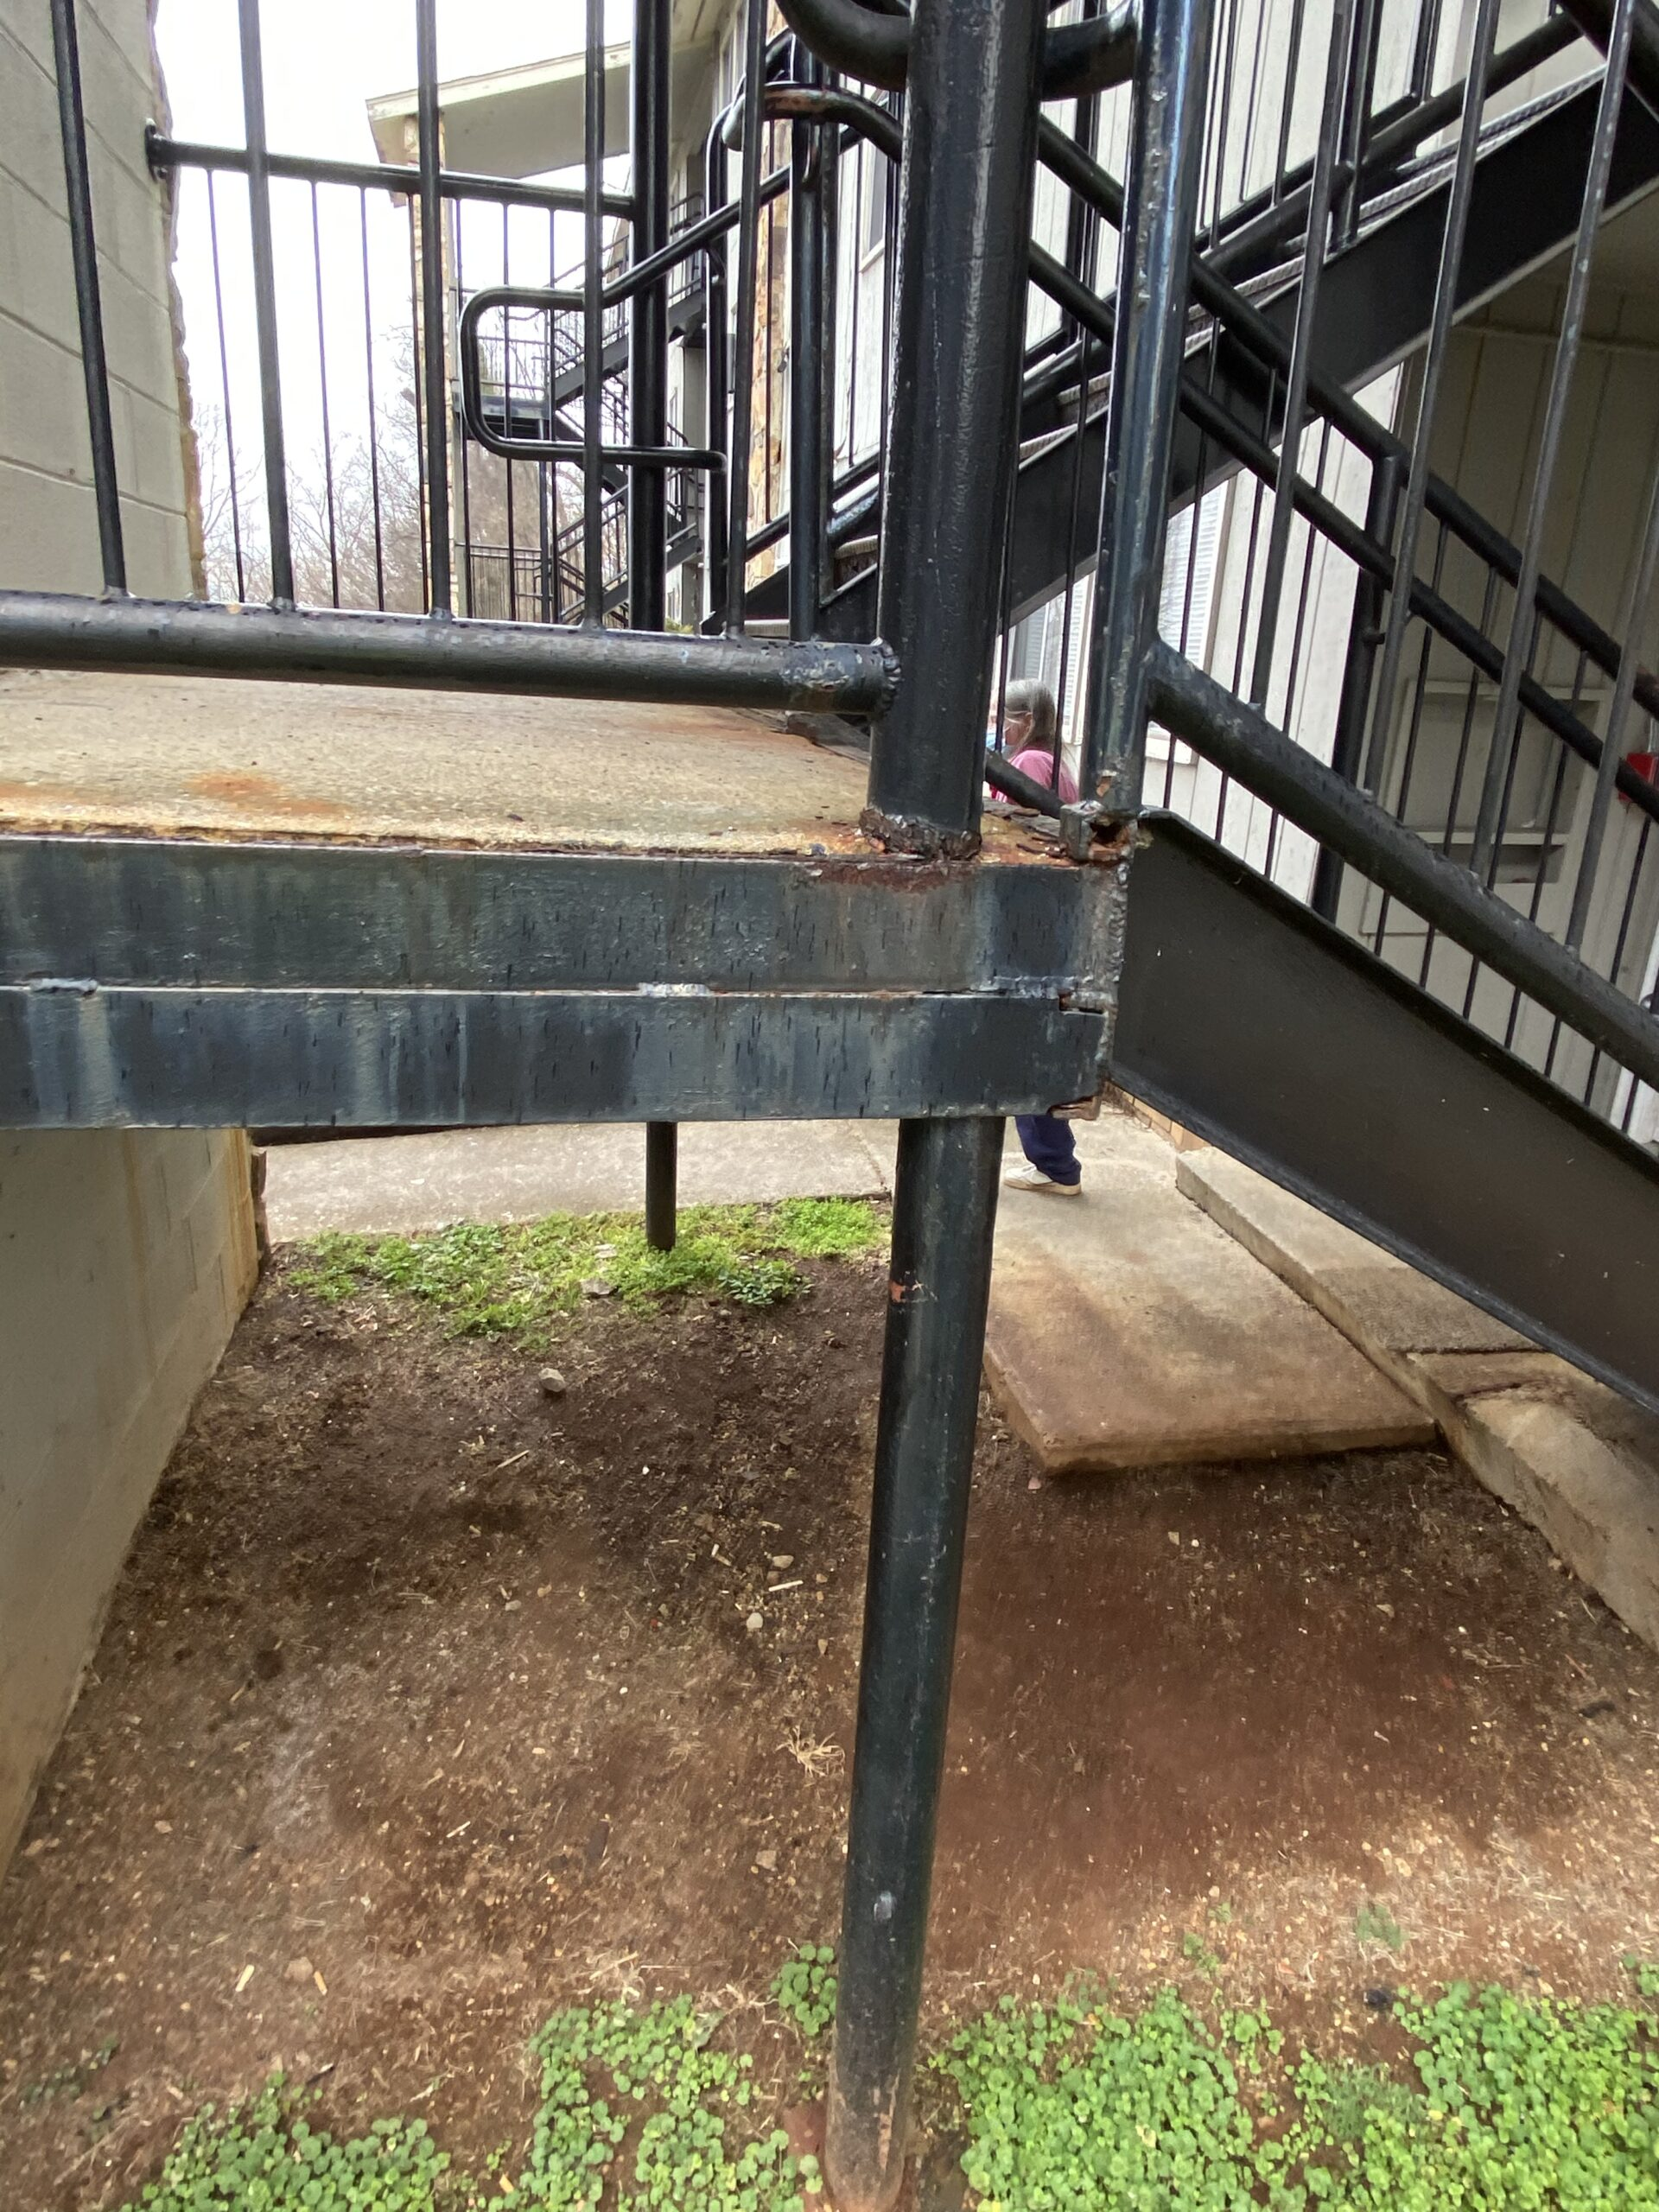 This is a picture of stairwells the litespeed construction is expecting